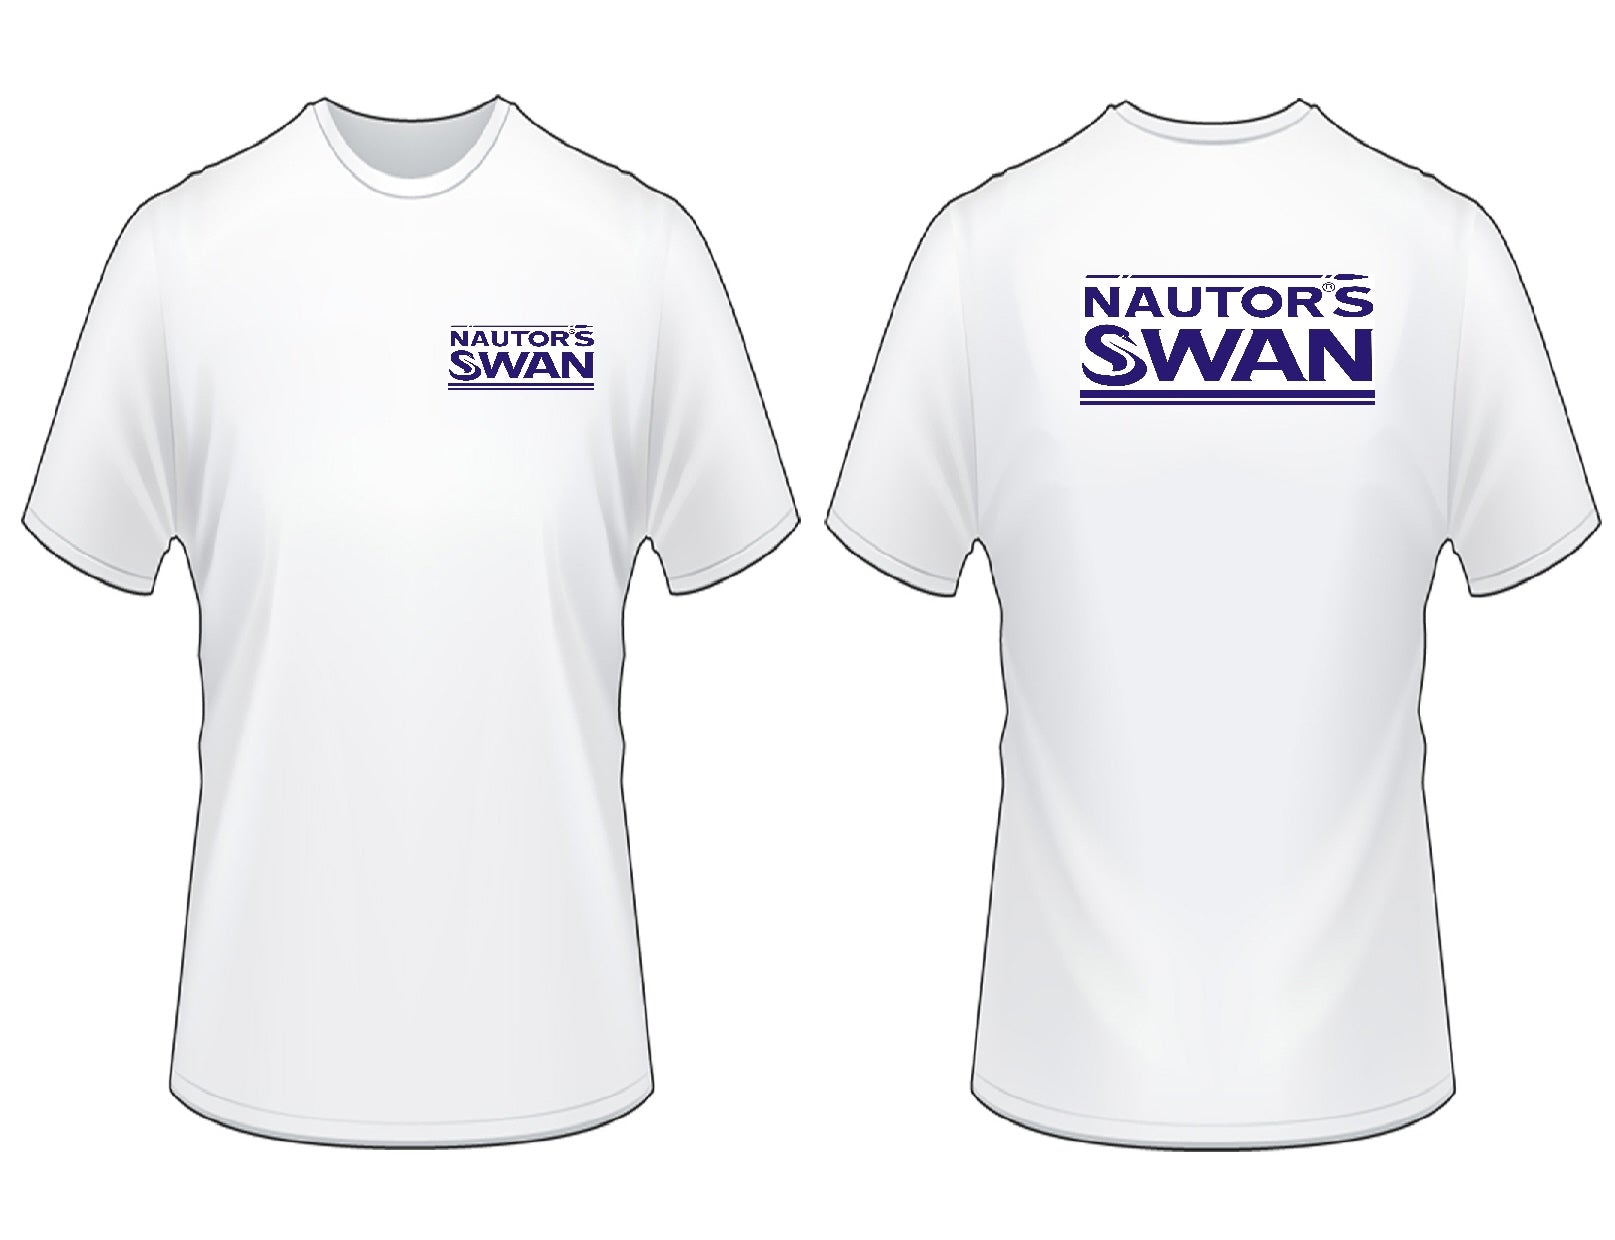 Nautors Swan T-Shirt